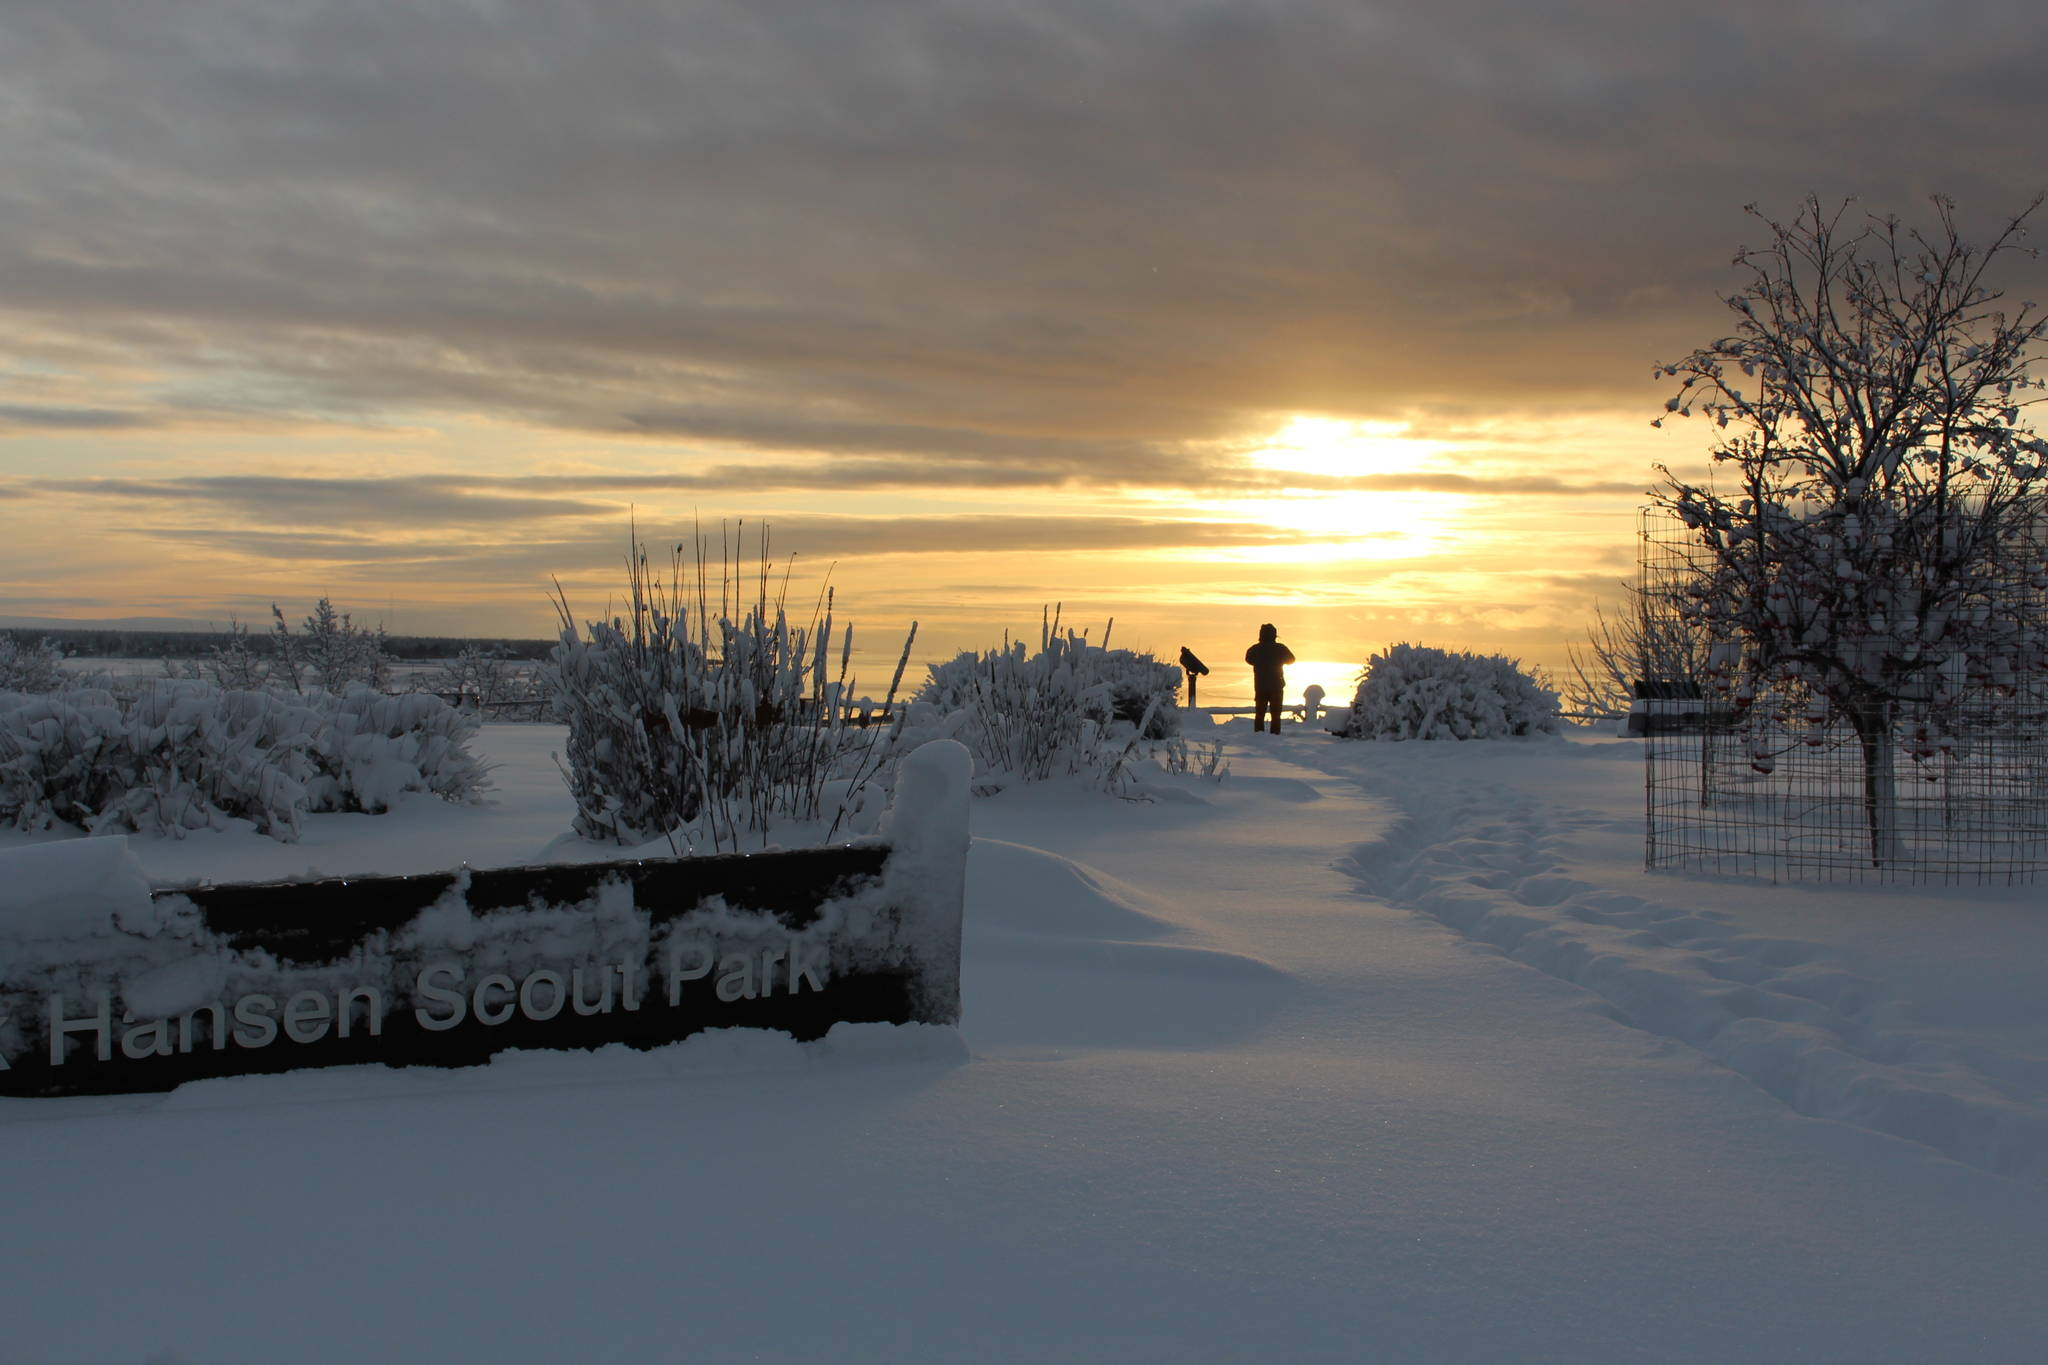 Erik Hansen Scout Park can be seen here in Kenai, Alaska on Dec. 3, 2019. (Photo by Brian Mazurek/Peninsula Clarion)